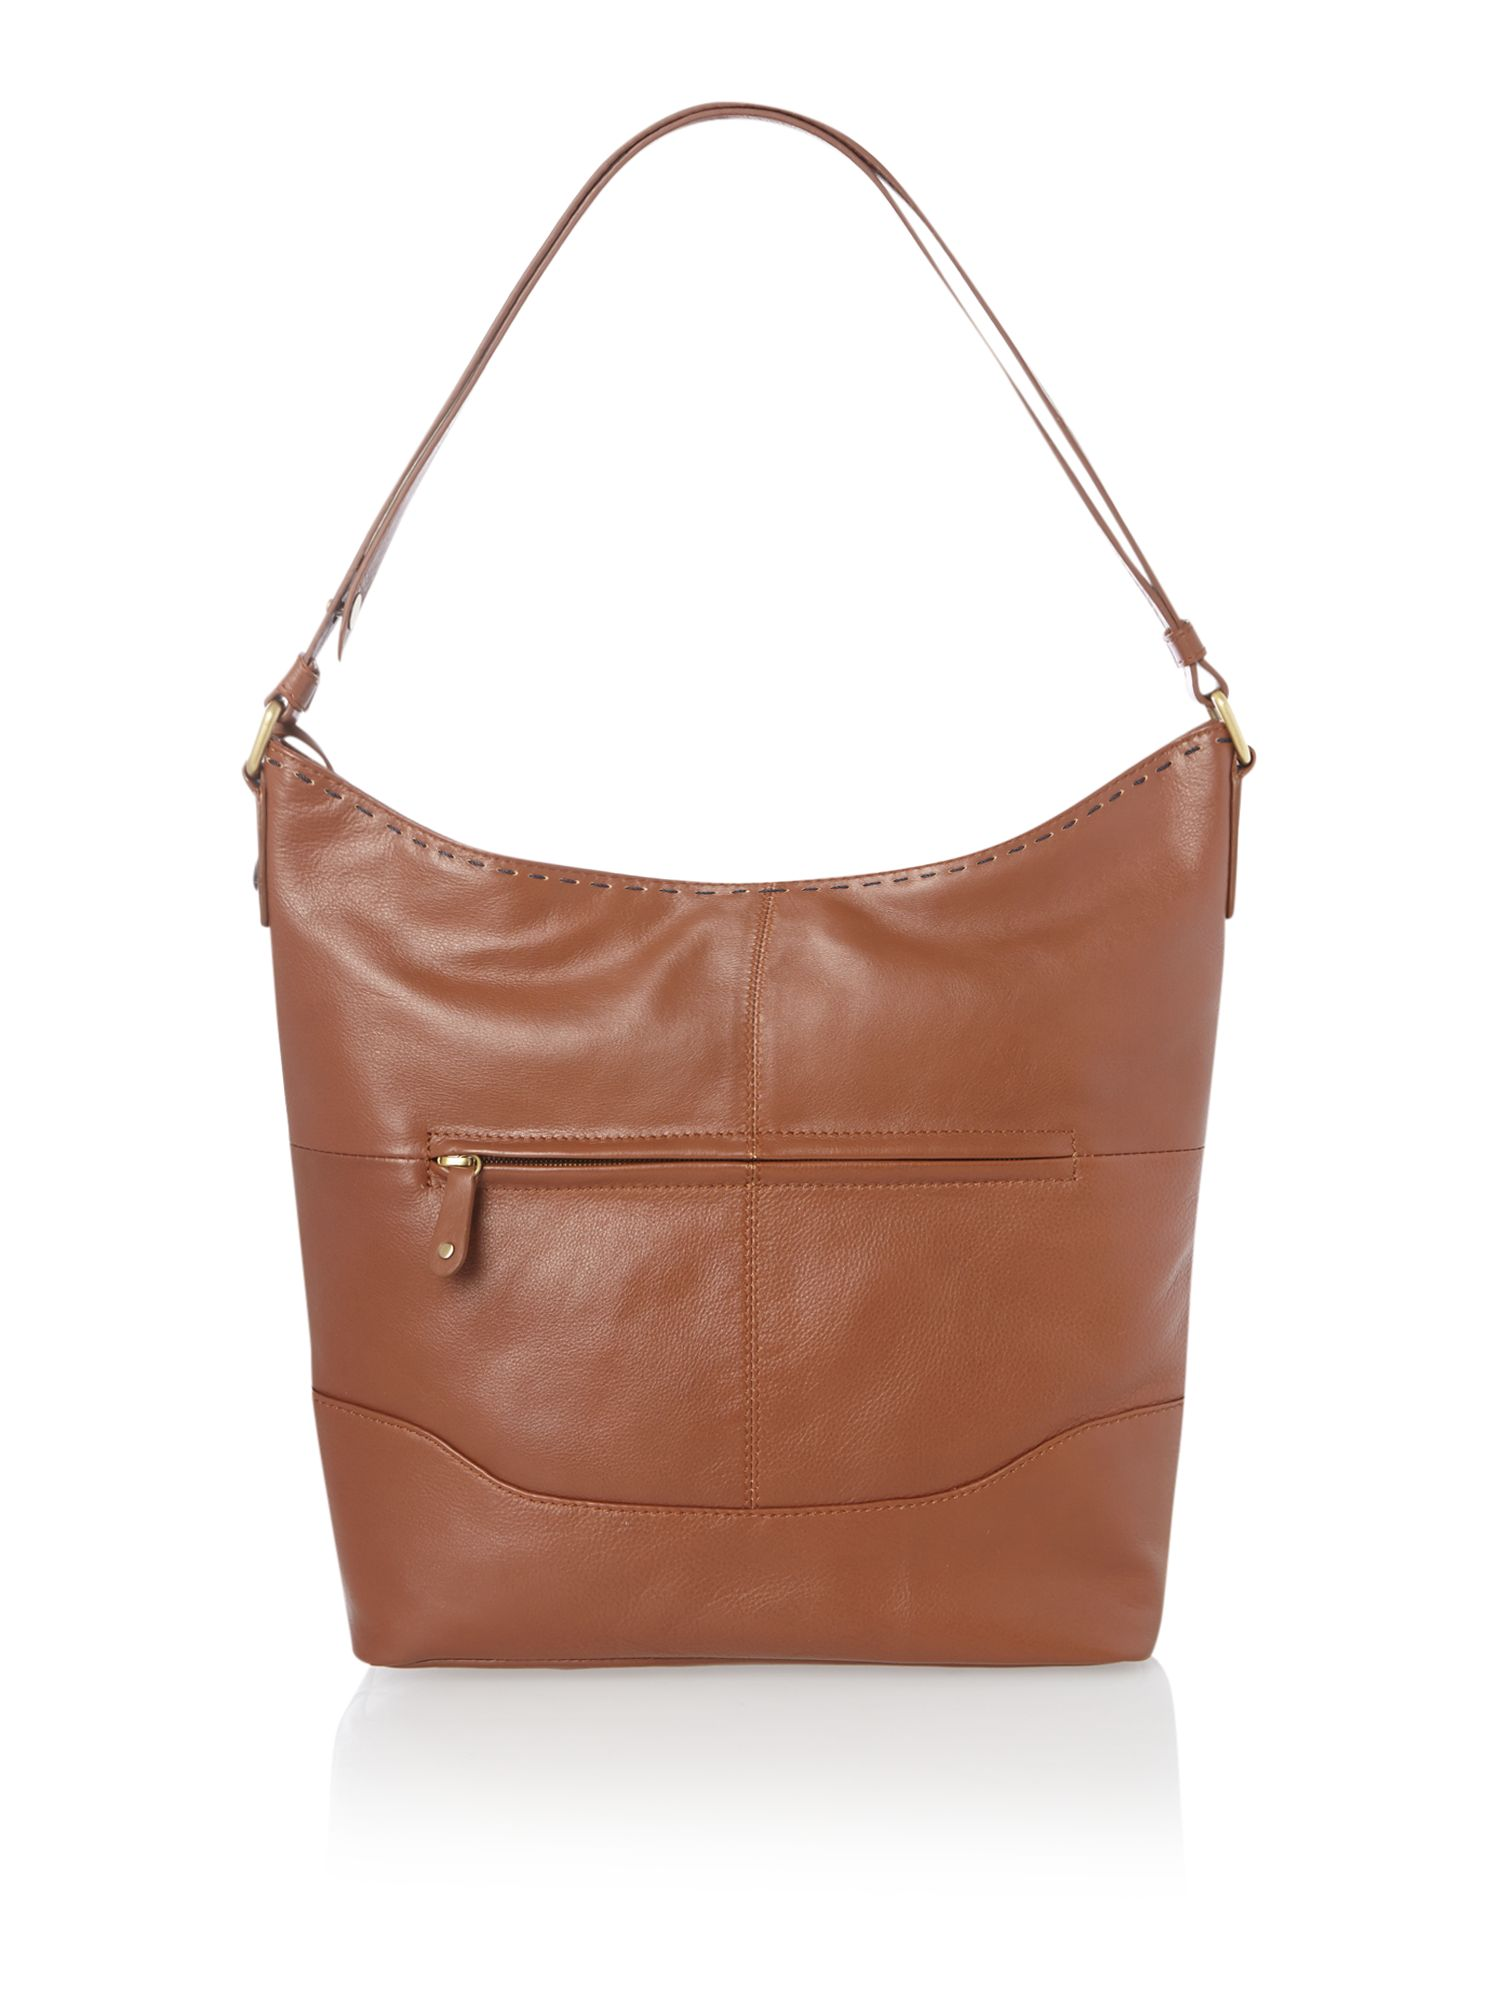 Rosehip hobo bag